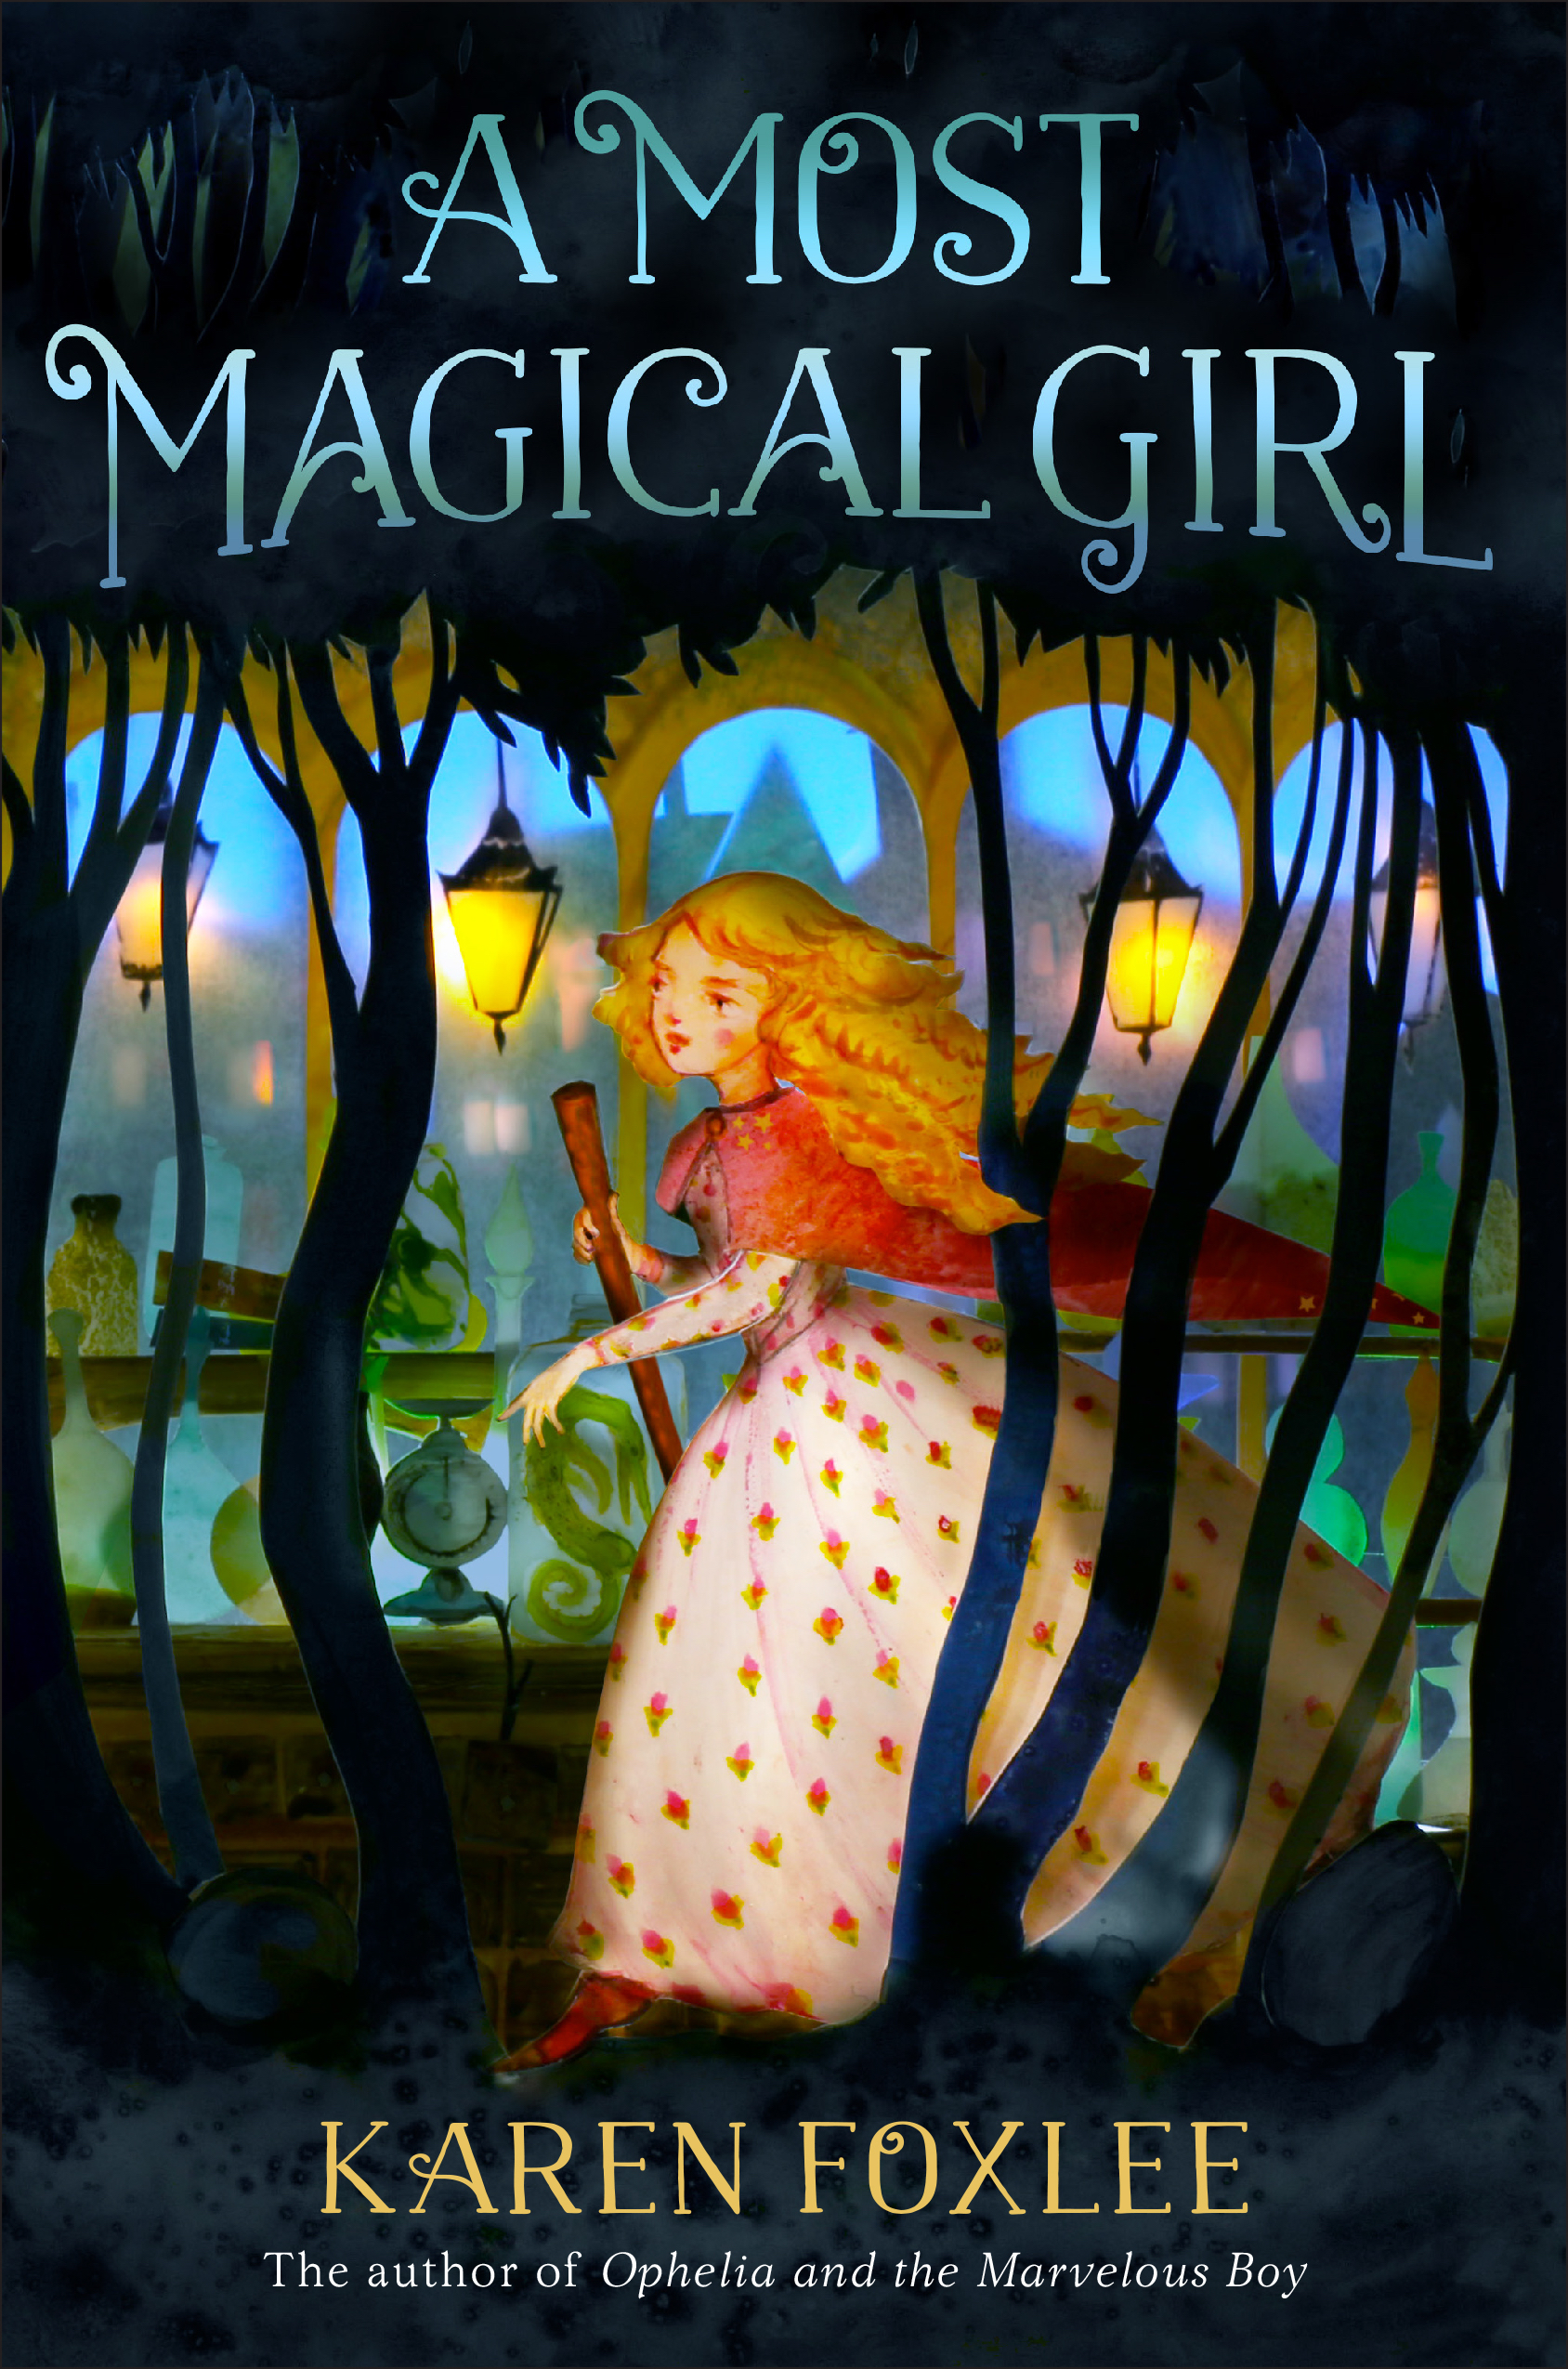 Most Magical Girl_comps_010815.indd